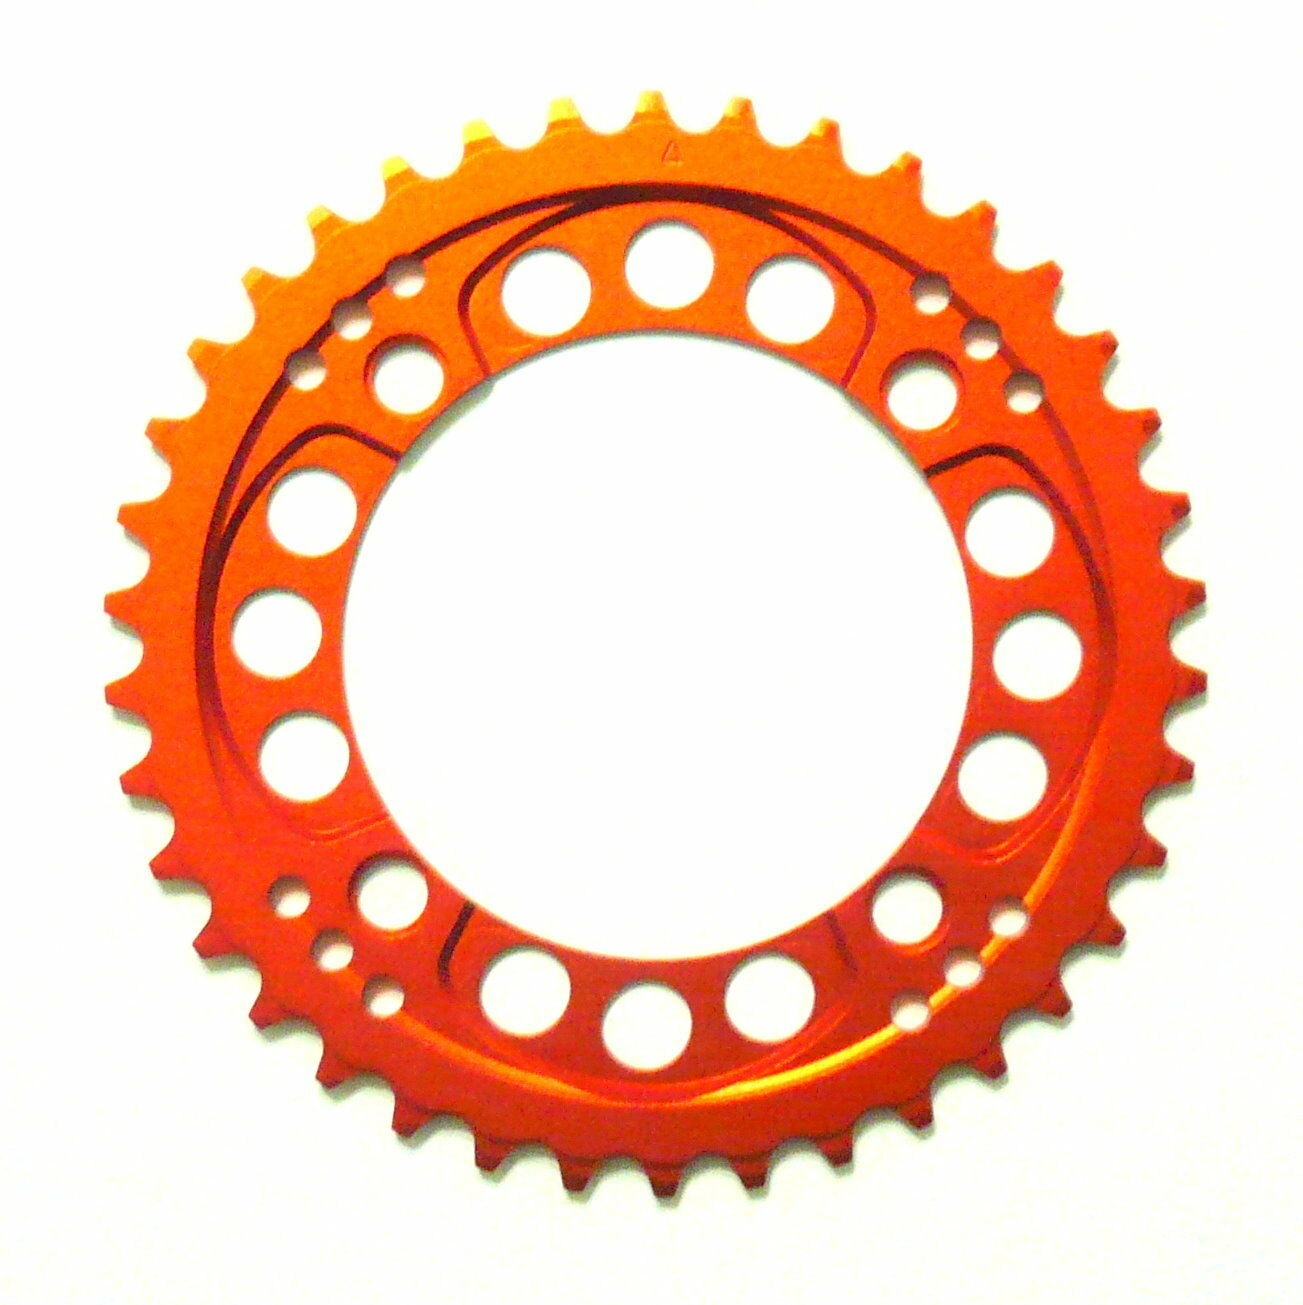 Gobike88 MR CONTROL Chainring 9X 10X MTB, 38T, BCD 104mm, 85g, orange, G86